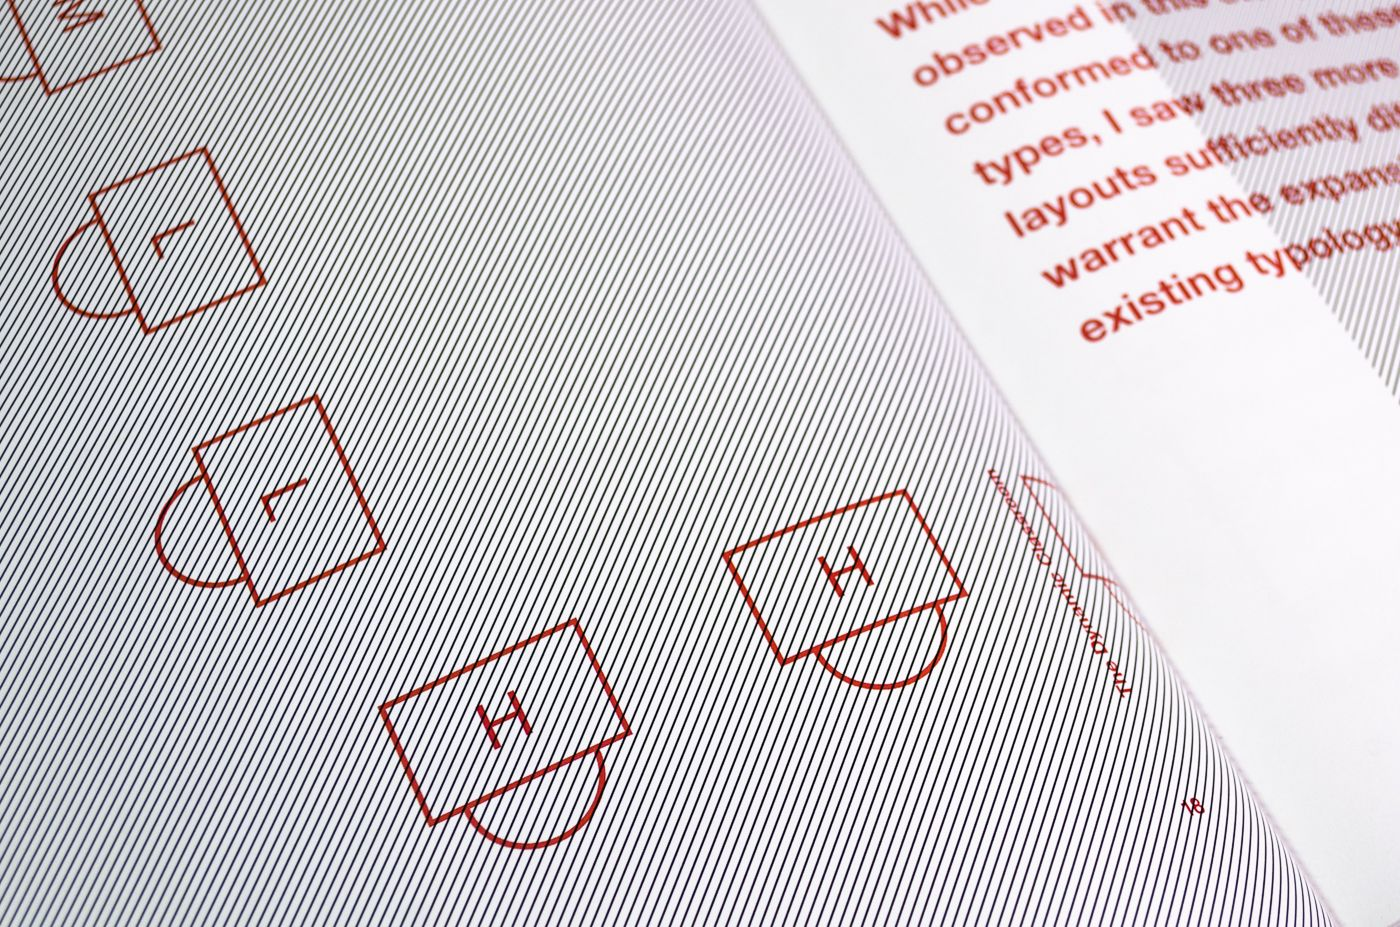 Detail of spread from The Dynamic Classroom. Thin black diagonal lines cover the page on the left. A diagram of classroom chairs is overprinted in red ink. The page on the right, which is out of focus, has text printed in red.